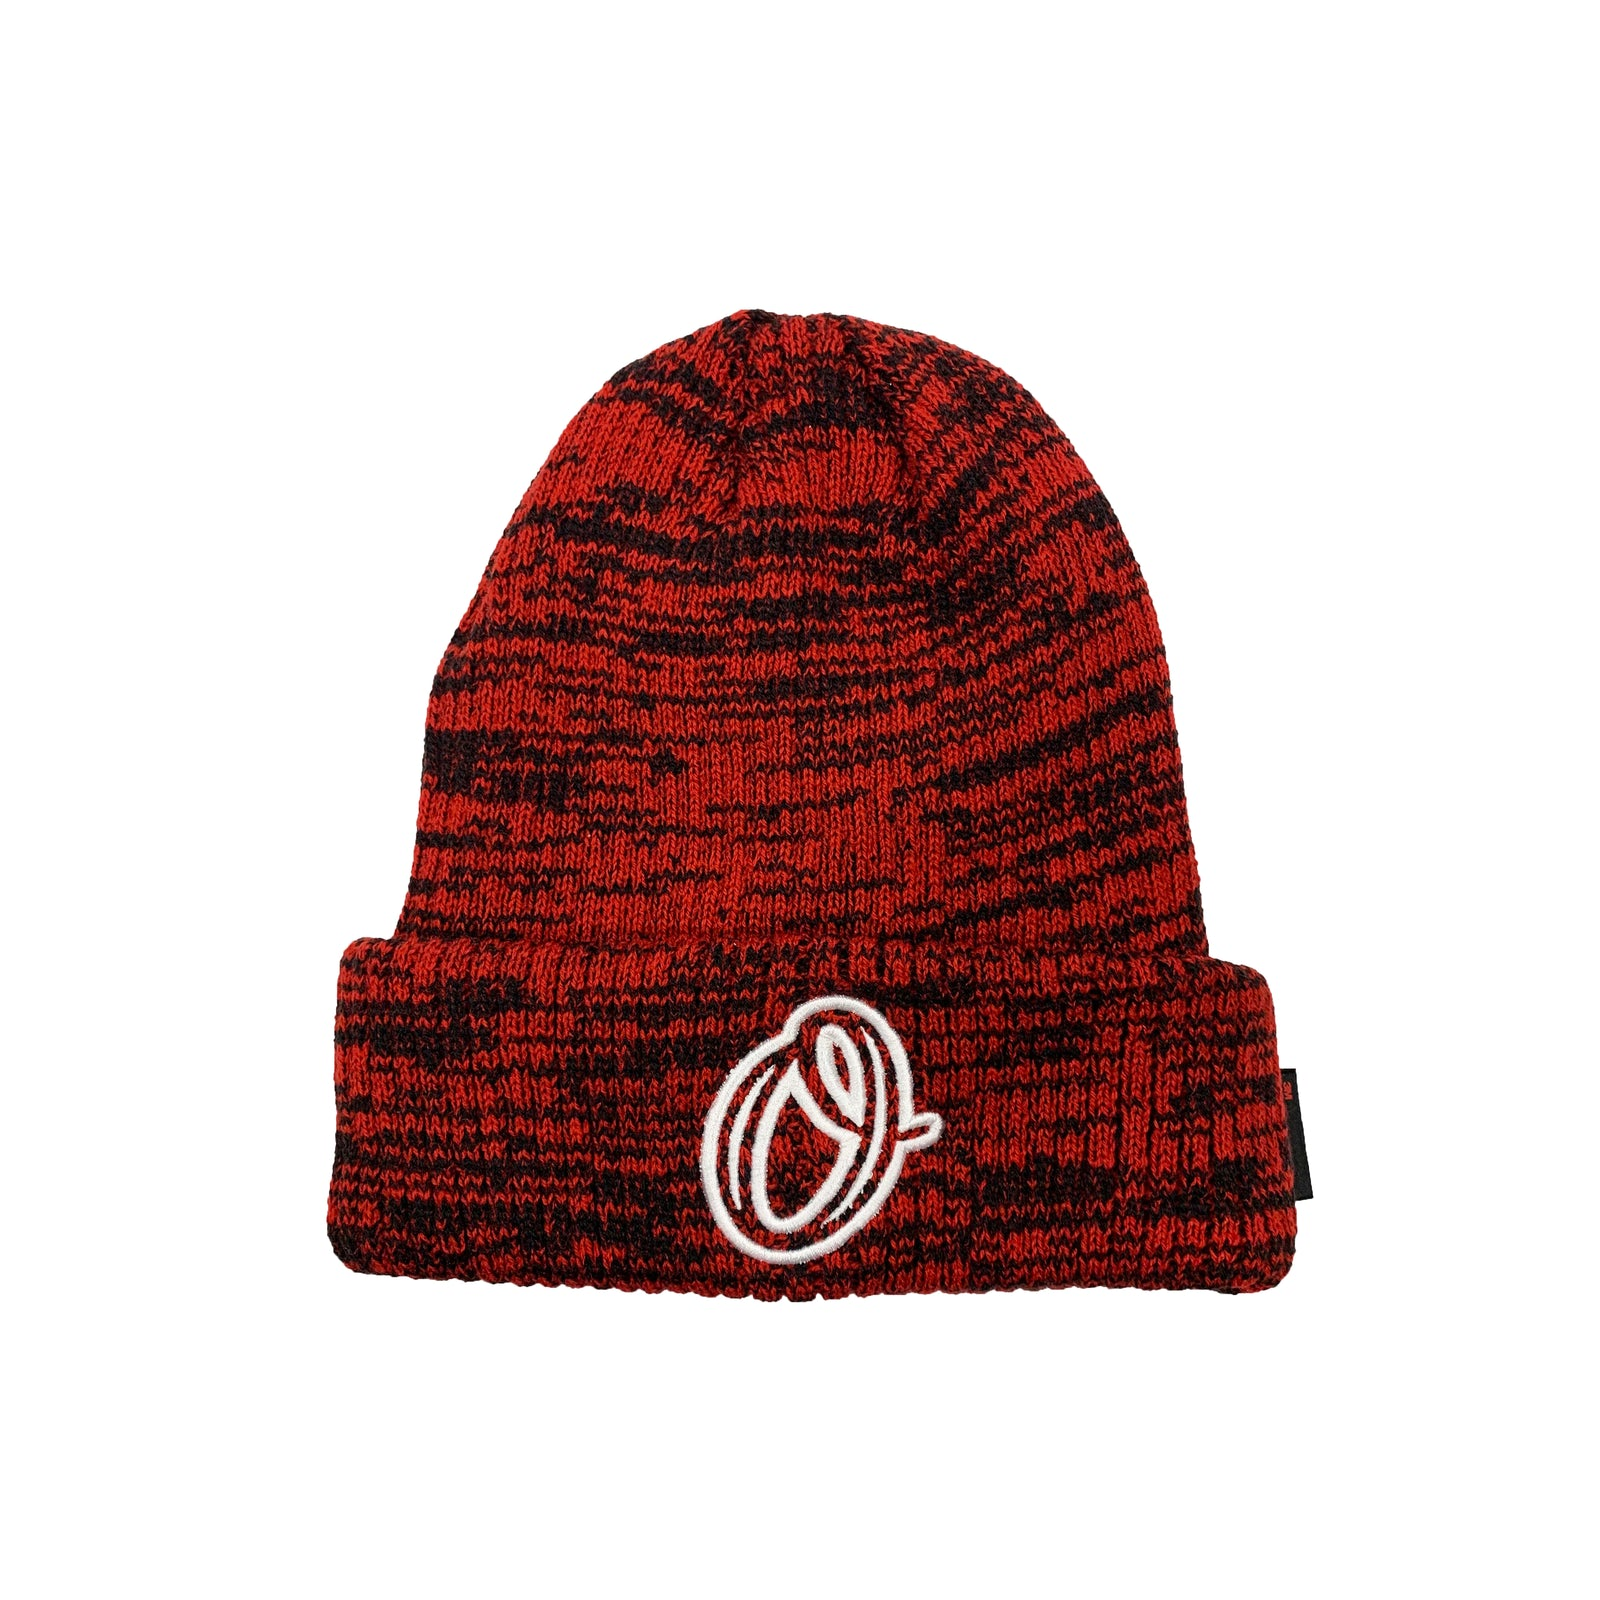 Circle O Beanie (Red/Black)